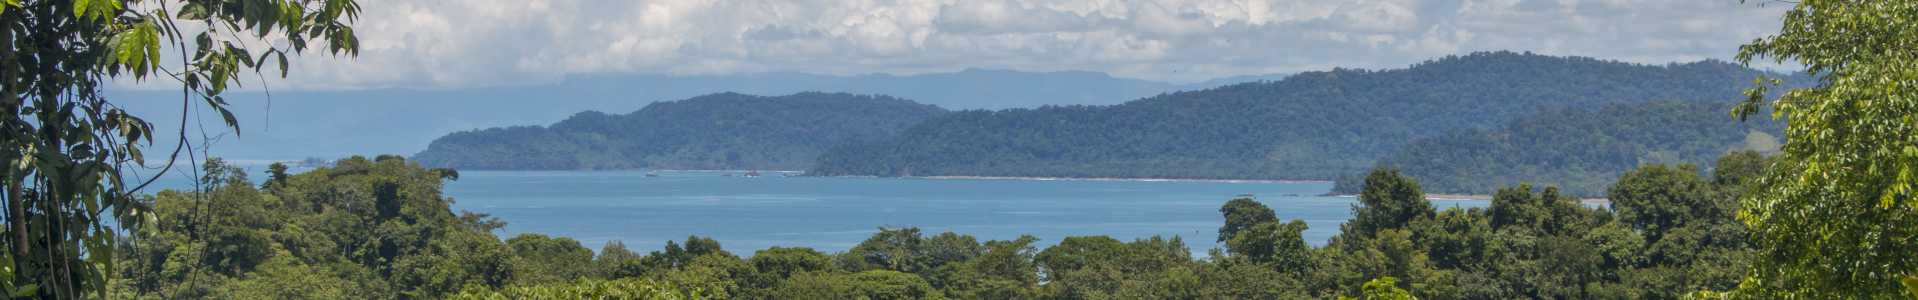 Costa Rica Border Crossings: Ultimate Guide